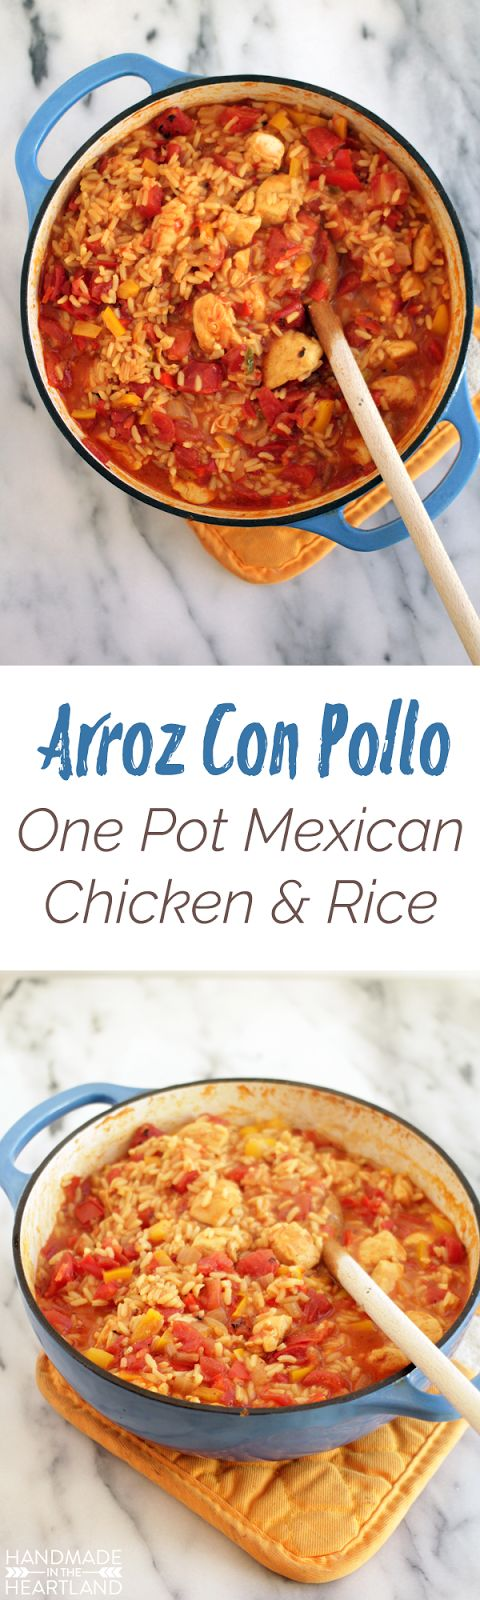 Arroz Con Pollo, One Pot Mexican Chicken & Rice Recipe #YesYouCAN #Ad